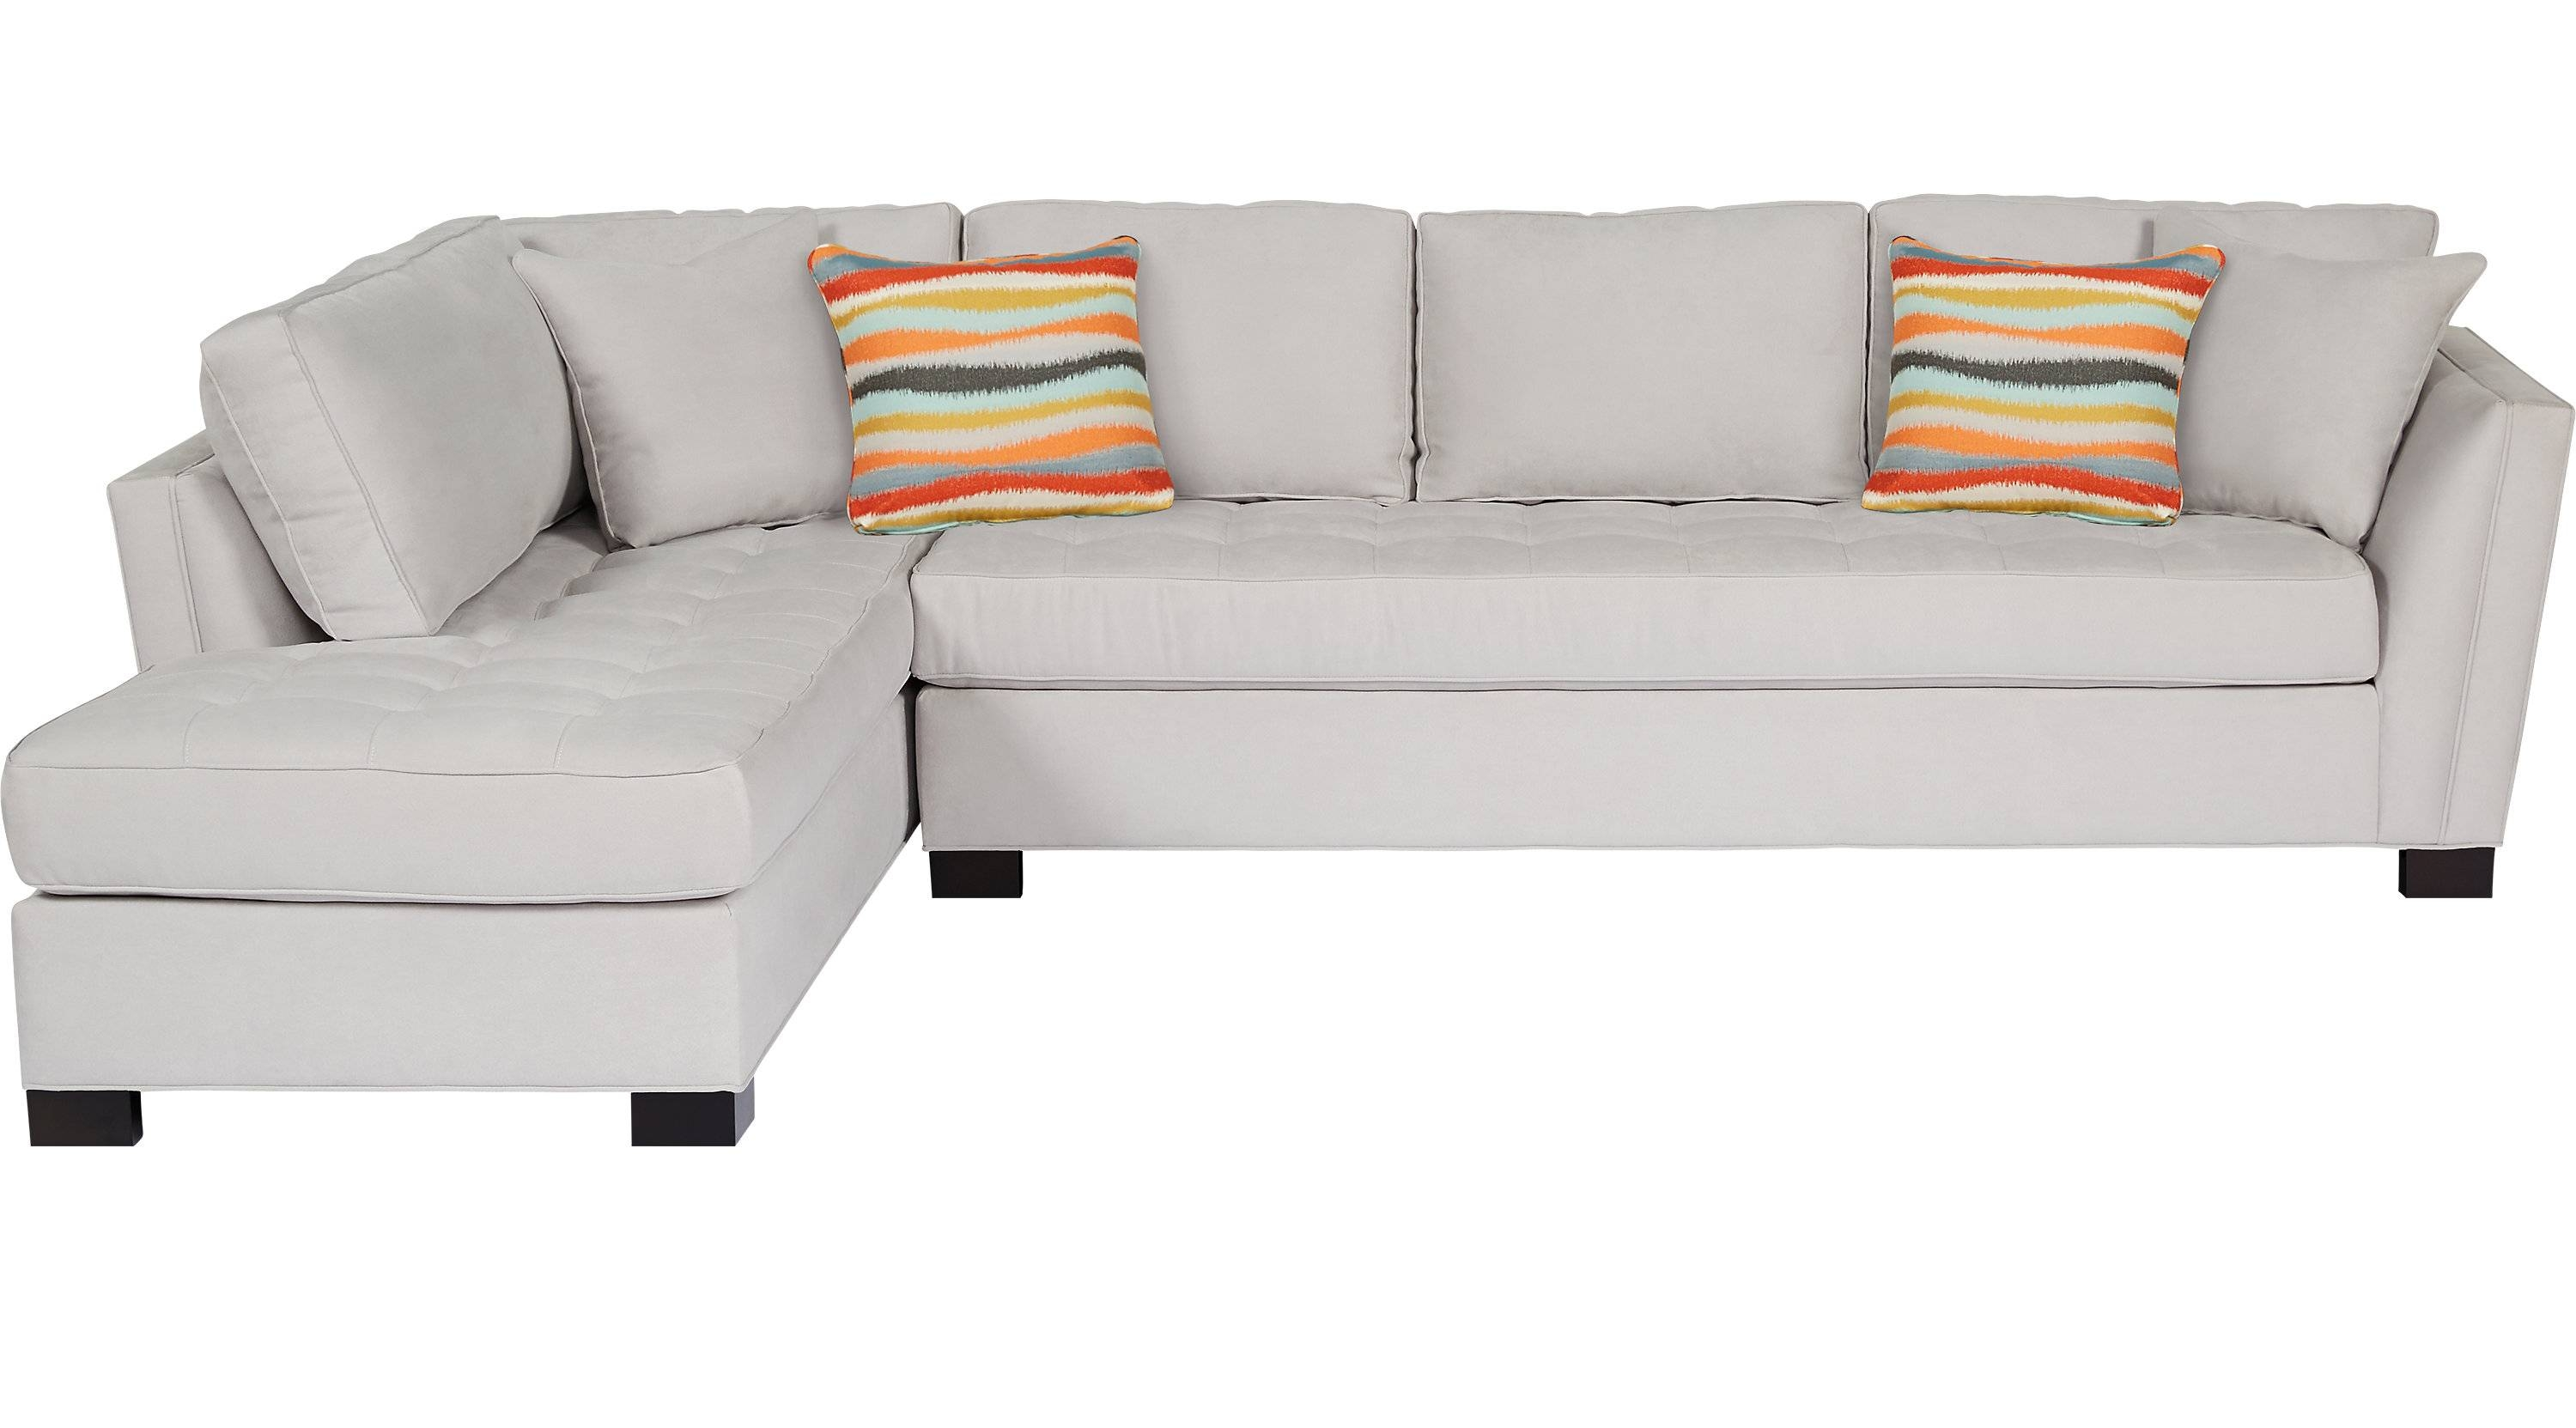 Living Room: Using Elegant Cindy Crawford Sectional Sofa For throughout Cindy Crawford Metropolis Sofas (Image 10 of 15)